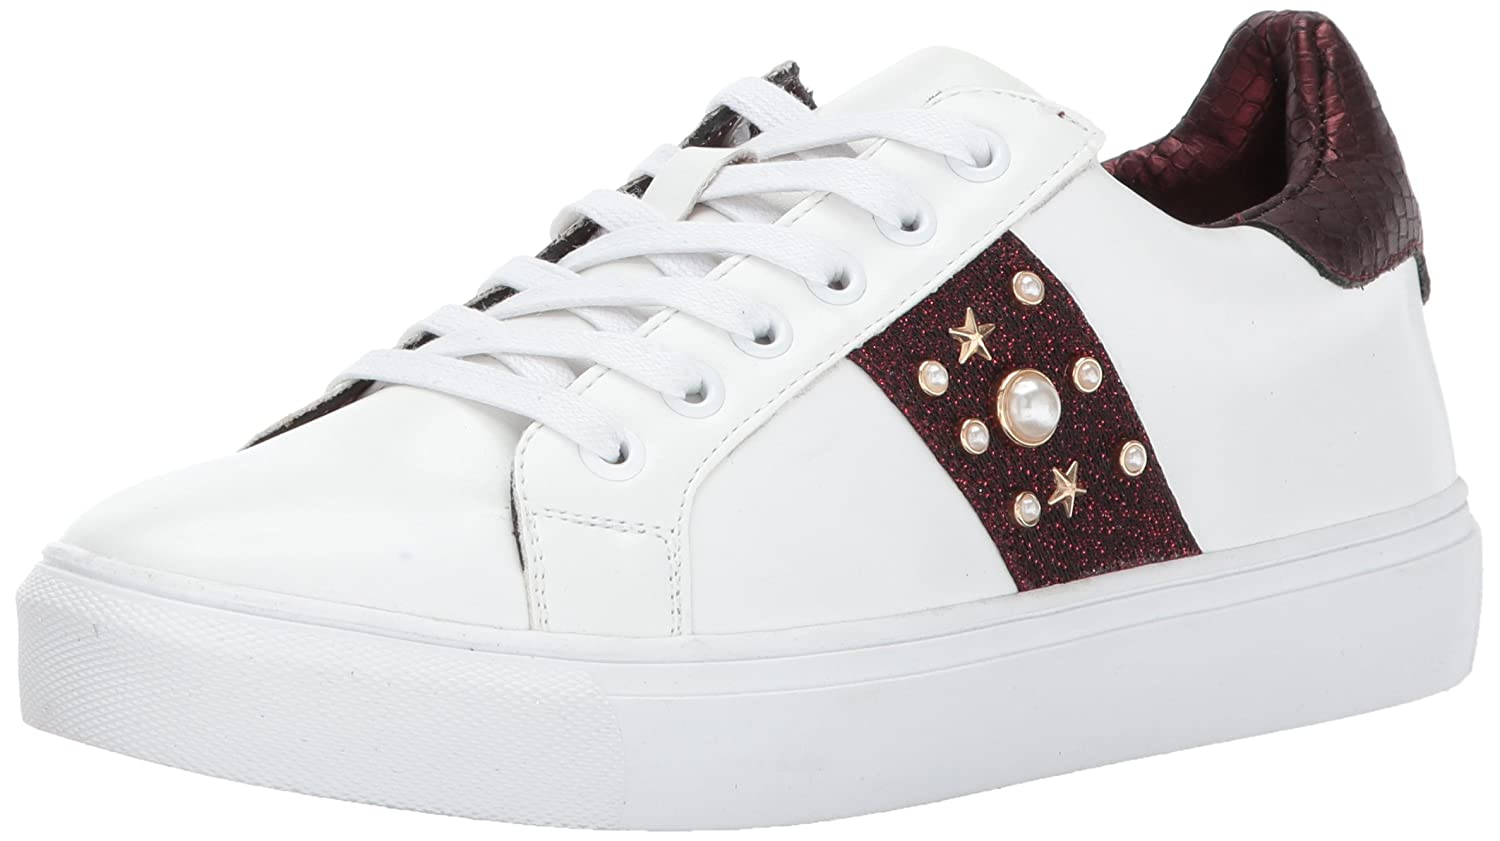 STEVEN by Steve Madden Women's Cory Fashion Sneaker B072843GM5 6 B(M) US|White/Multi